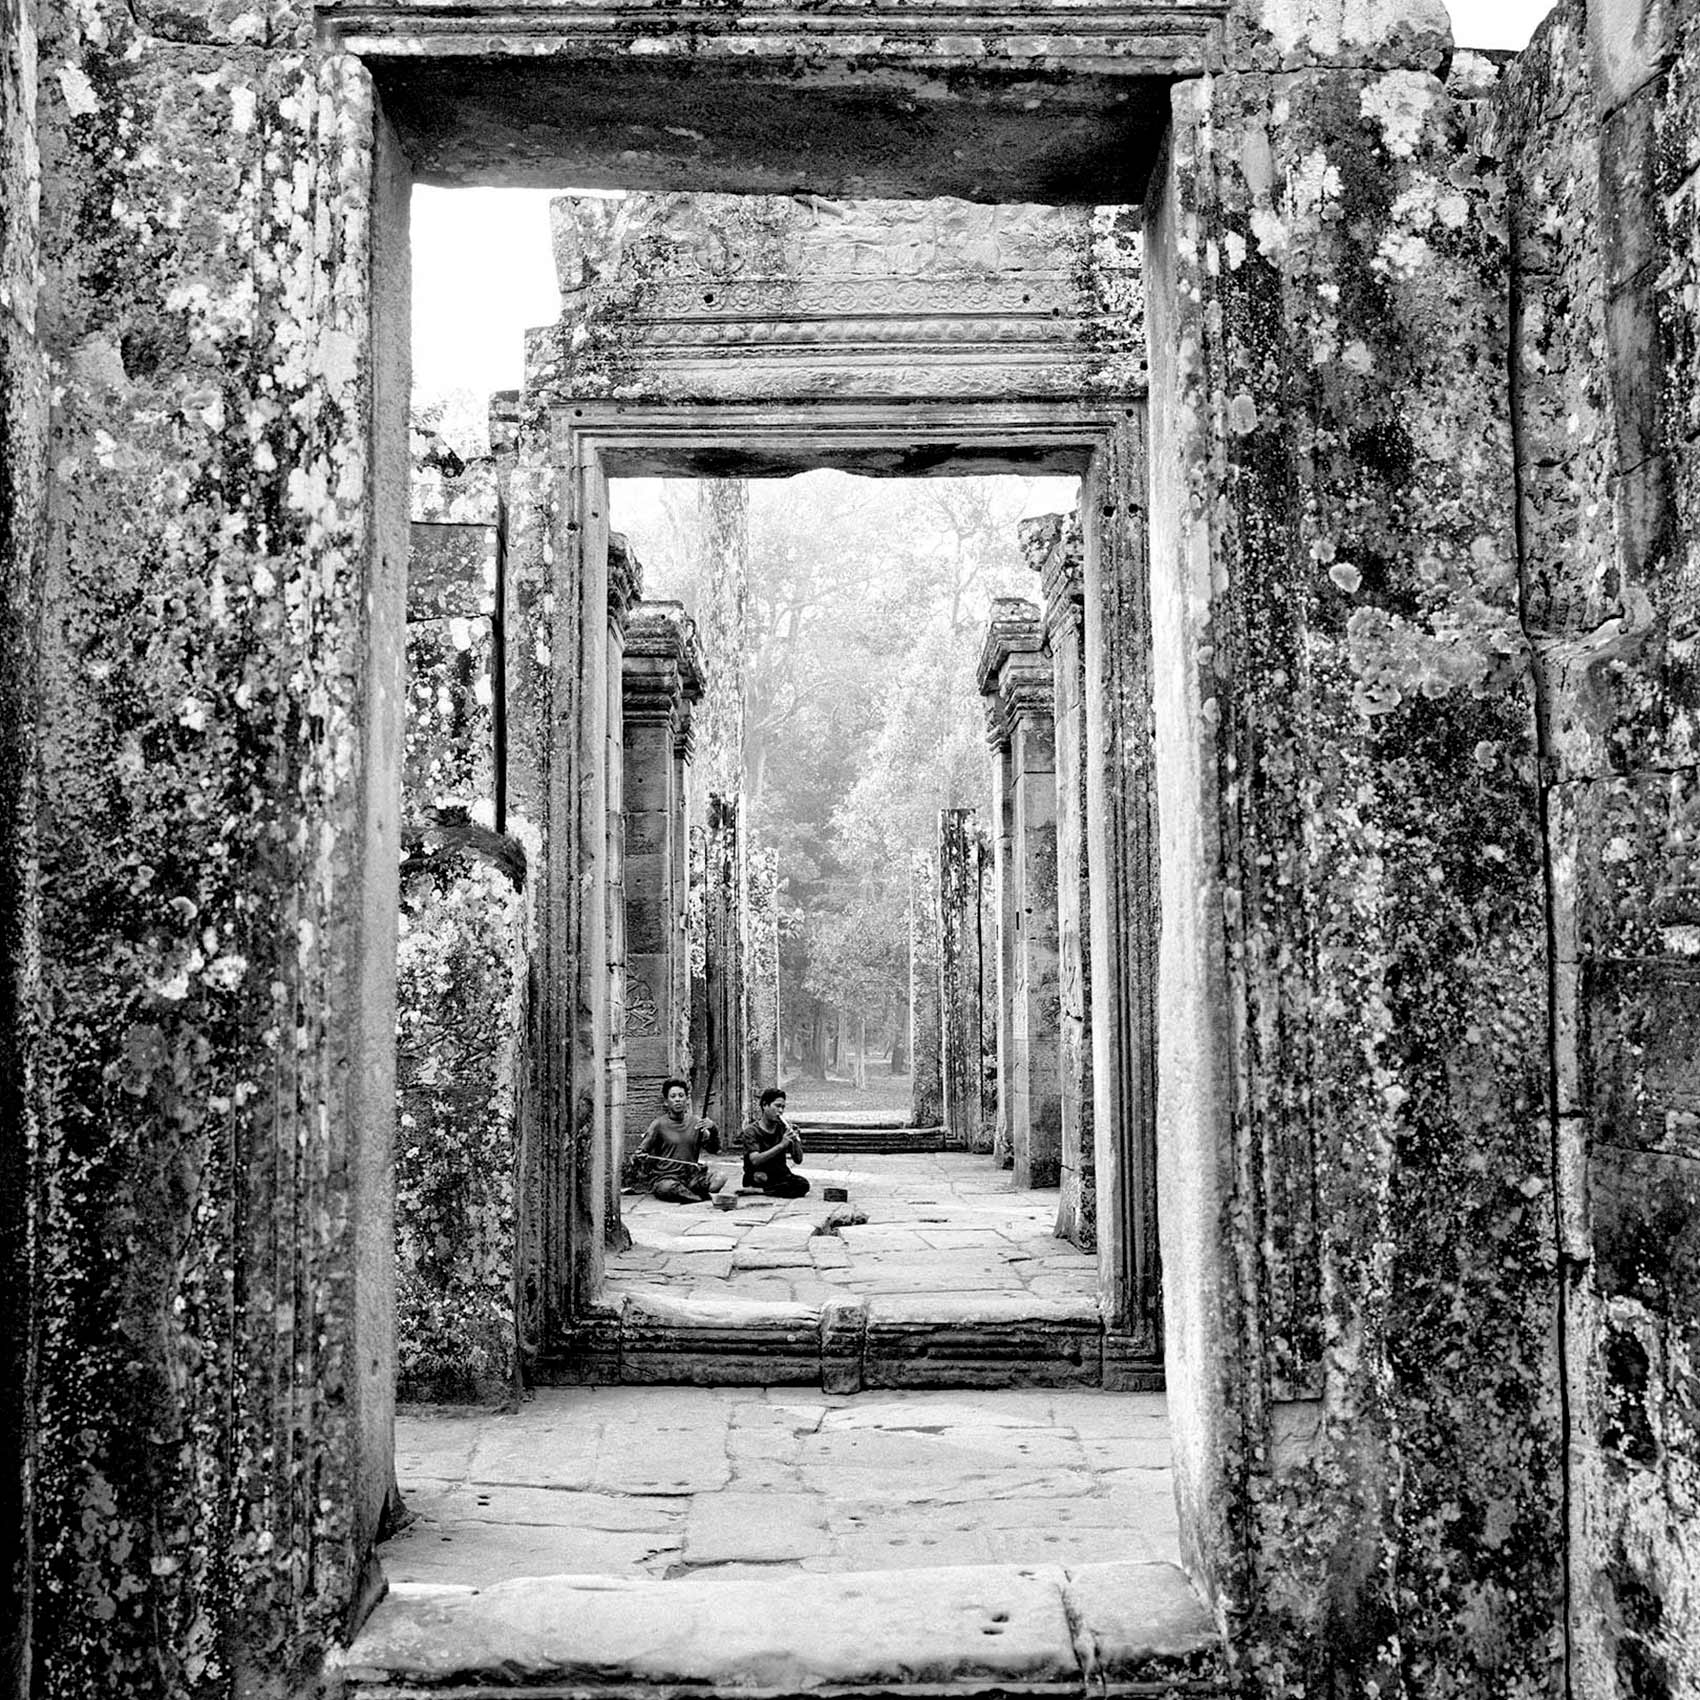 two-men-both-missing-their-legs-from-landmines-busk-inside-angkor-wat-temple-in-cambodia